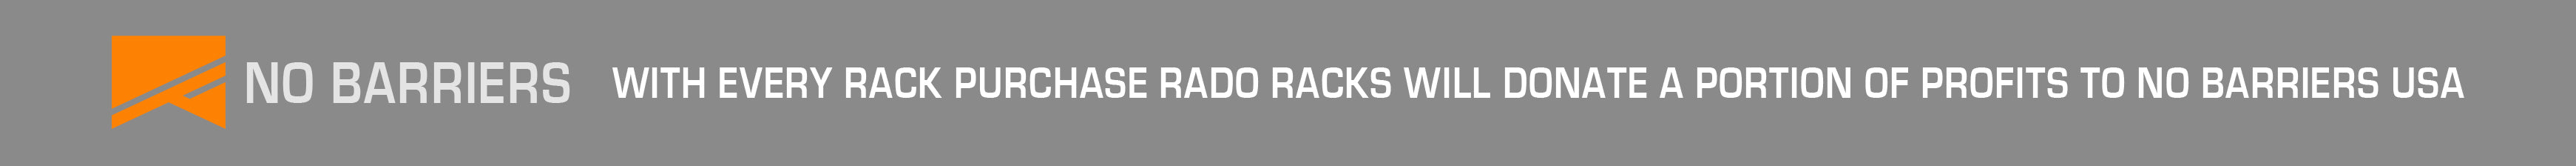 No Barriers - Rado Racks Partner